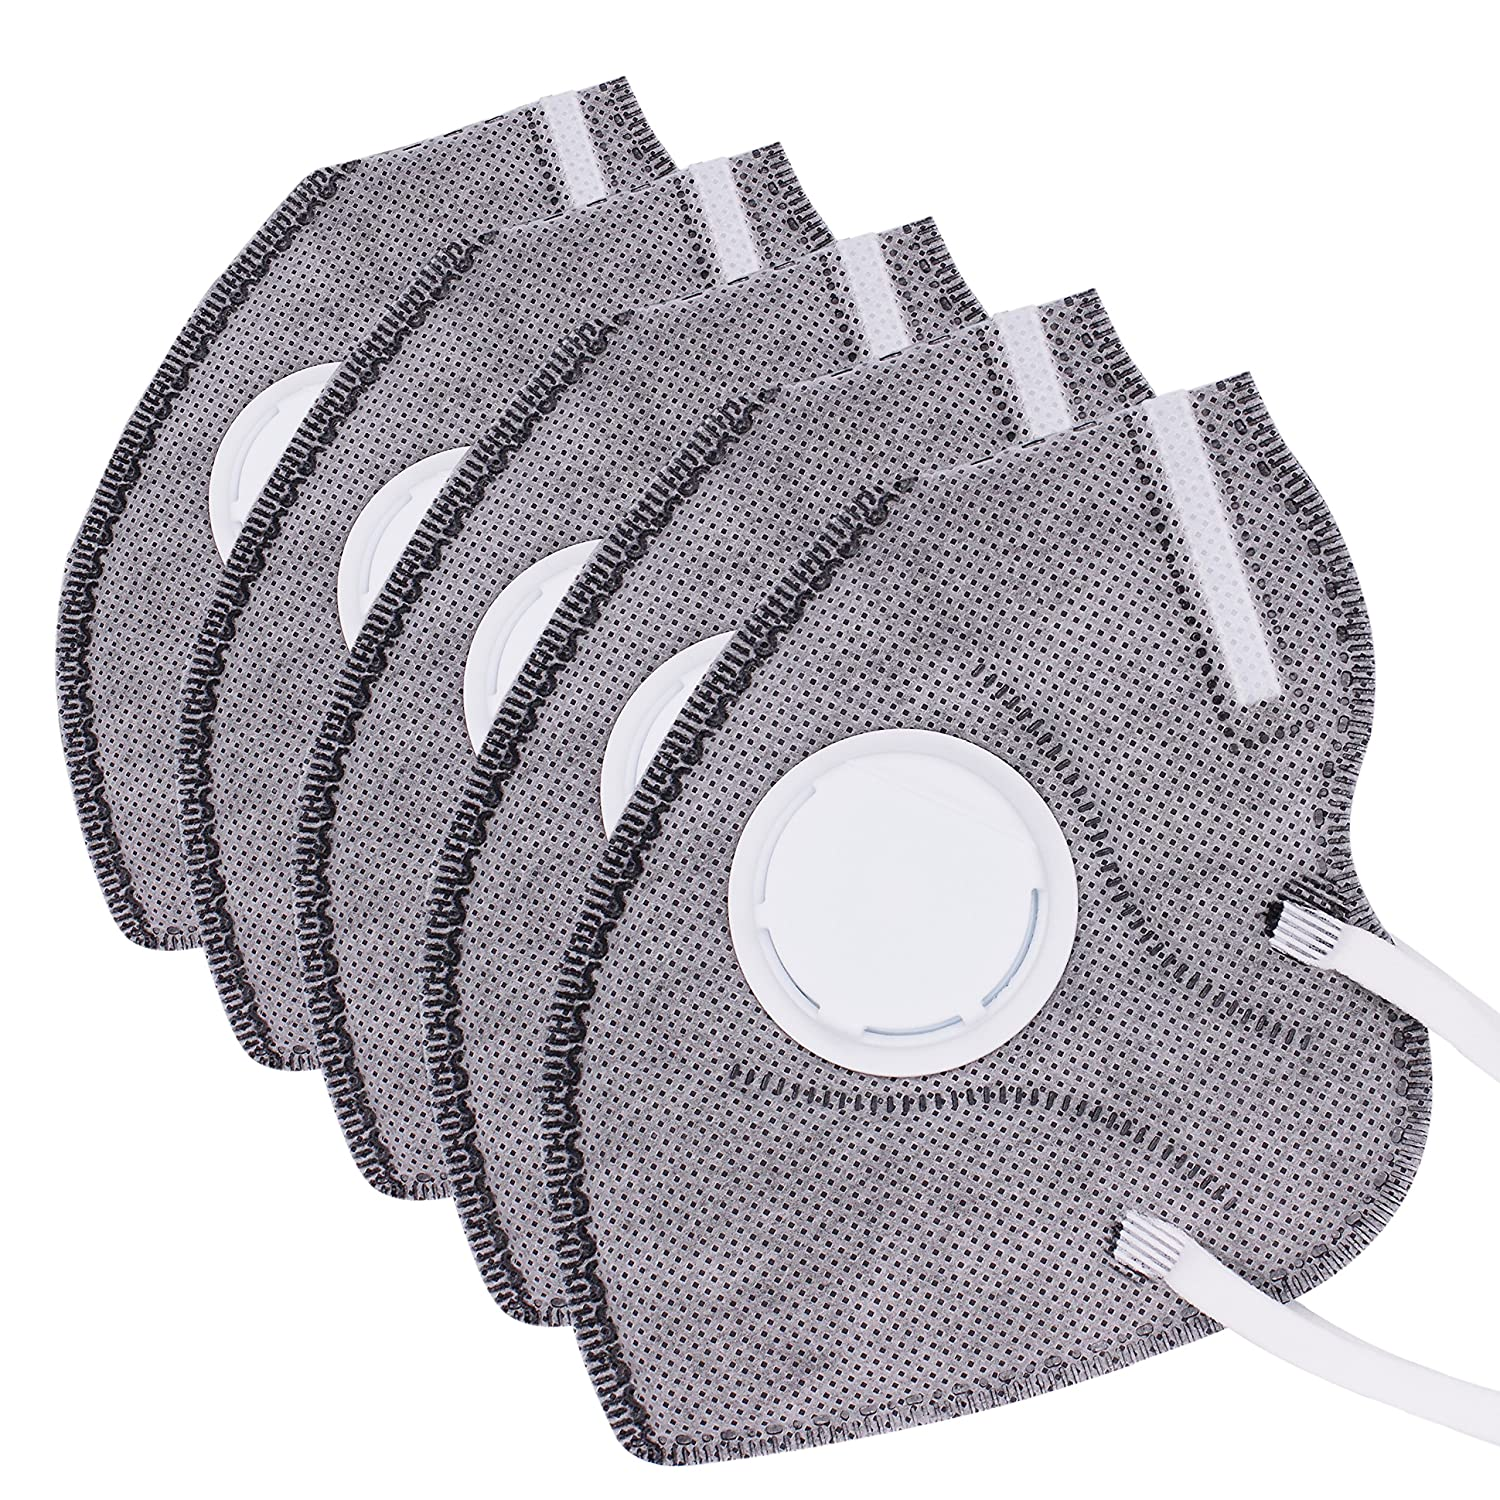 Muryobao Mouth Mask Anti Pollution Mask Unisex Outdoor Protection N95 4 Layer Filter Insert Anti Dust Mask with Valve Filter kouzhao-4 PACK-Grey